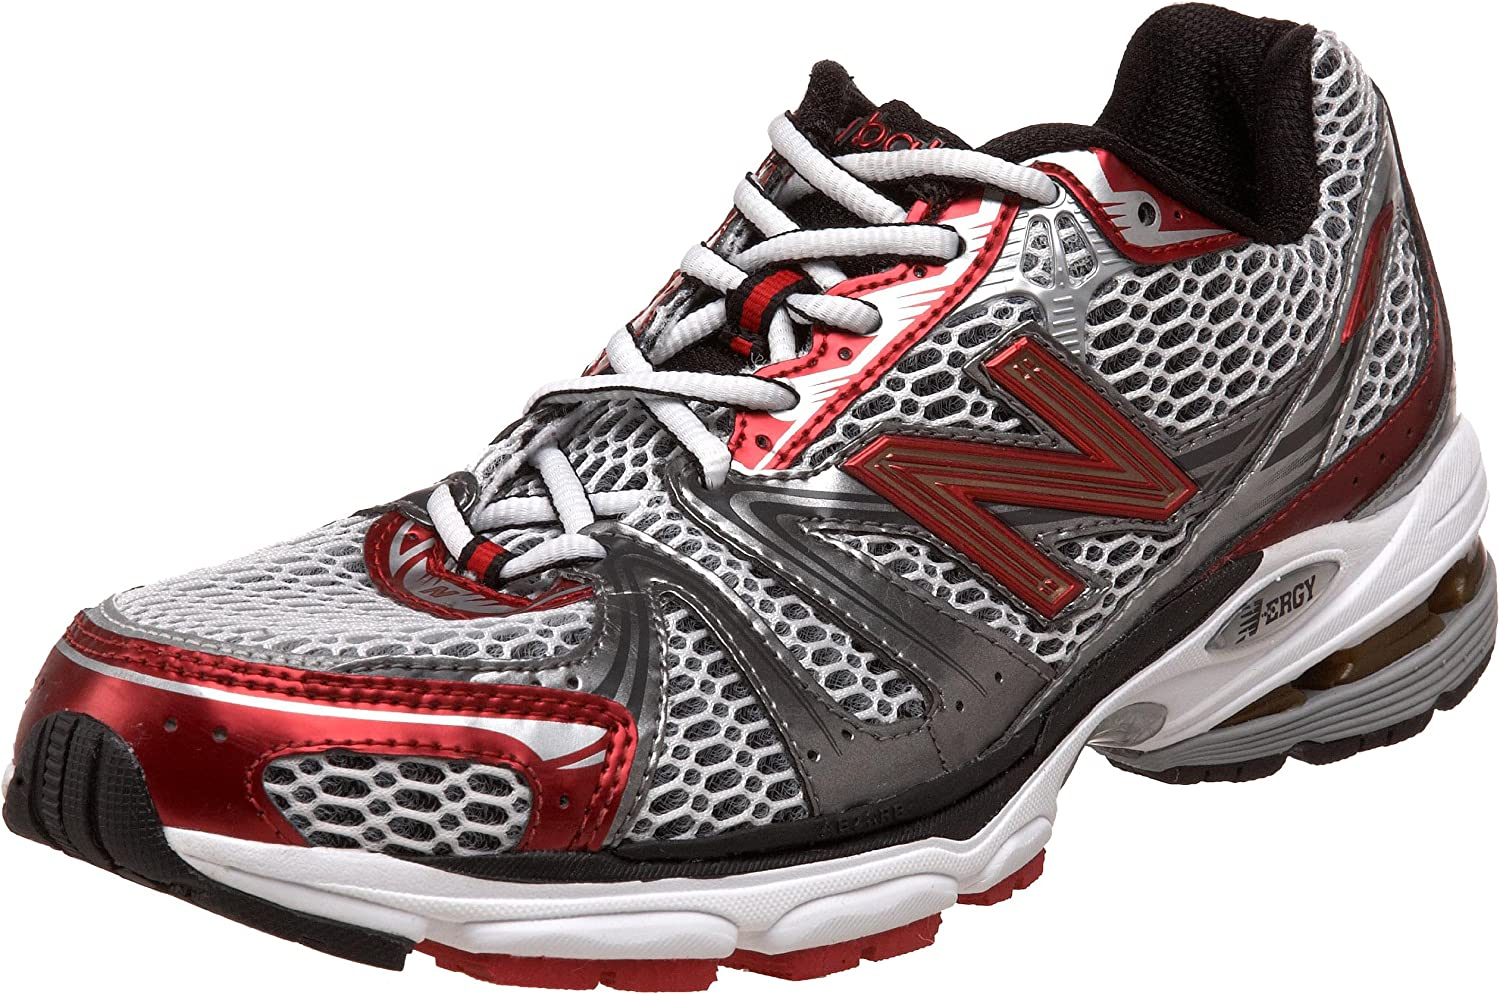 New Balance Men's Mr759sr Running shoes